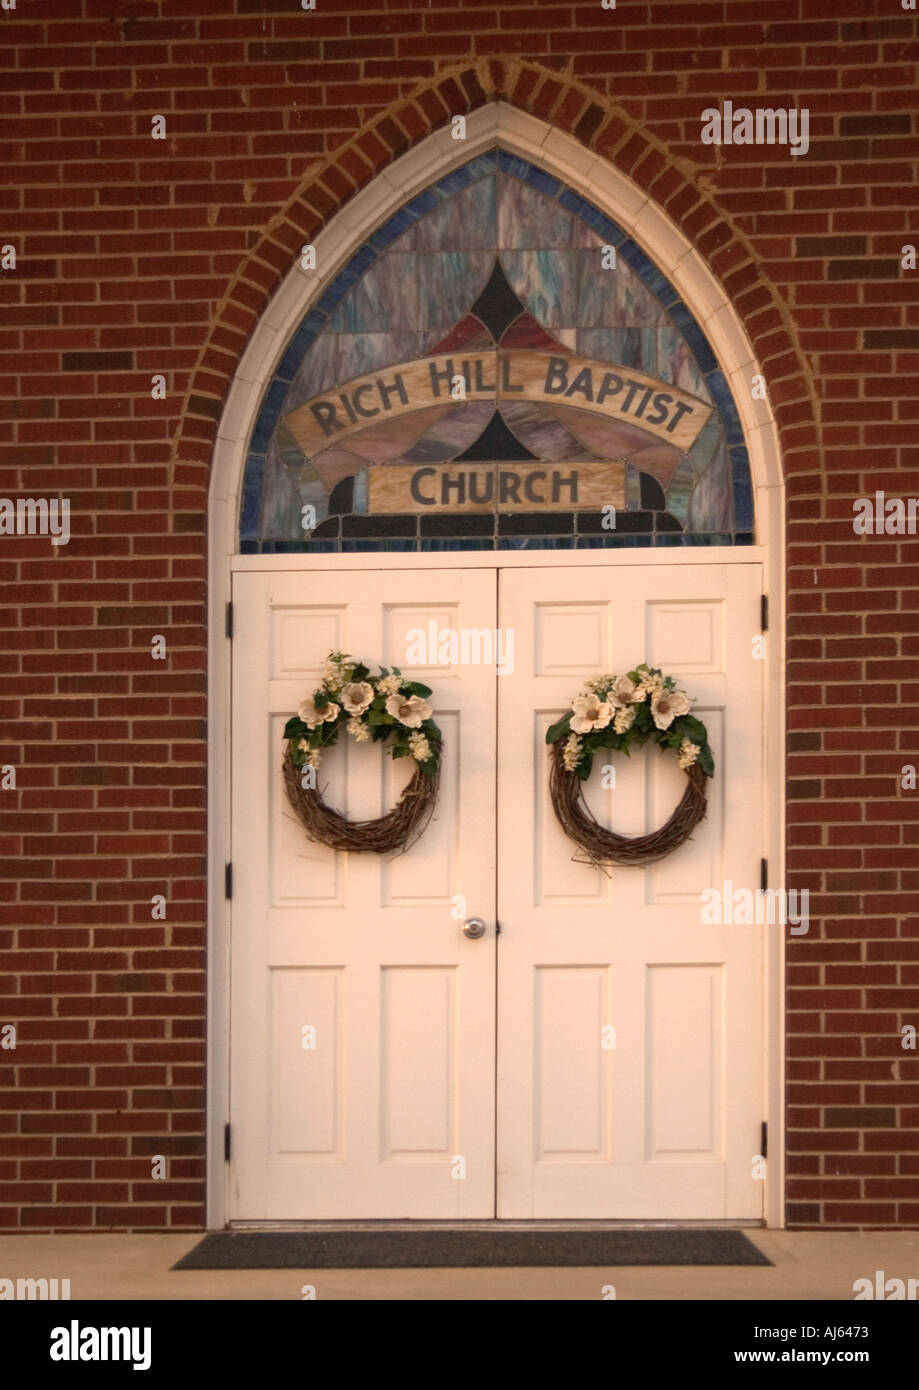 Wreaths Hanging On White Church Door With Stained Glass Window USA